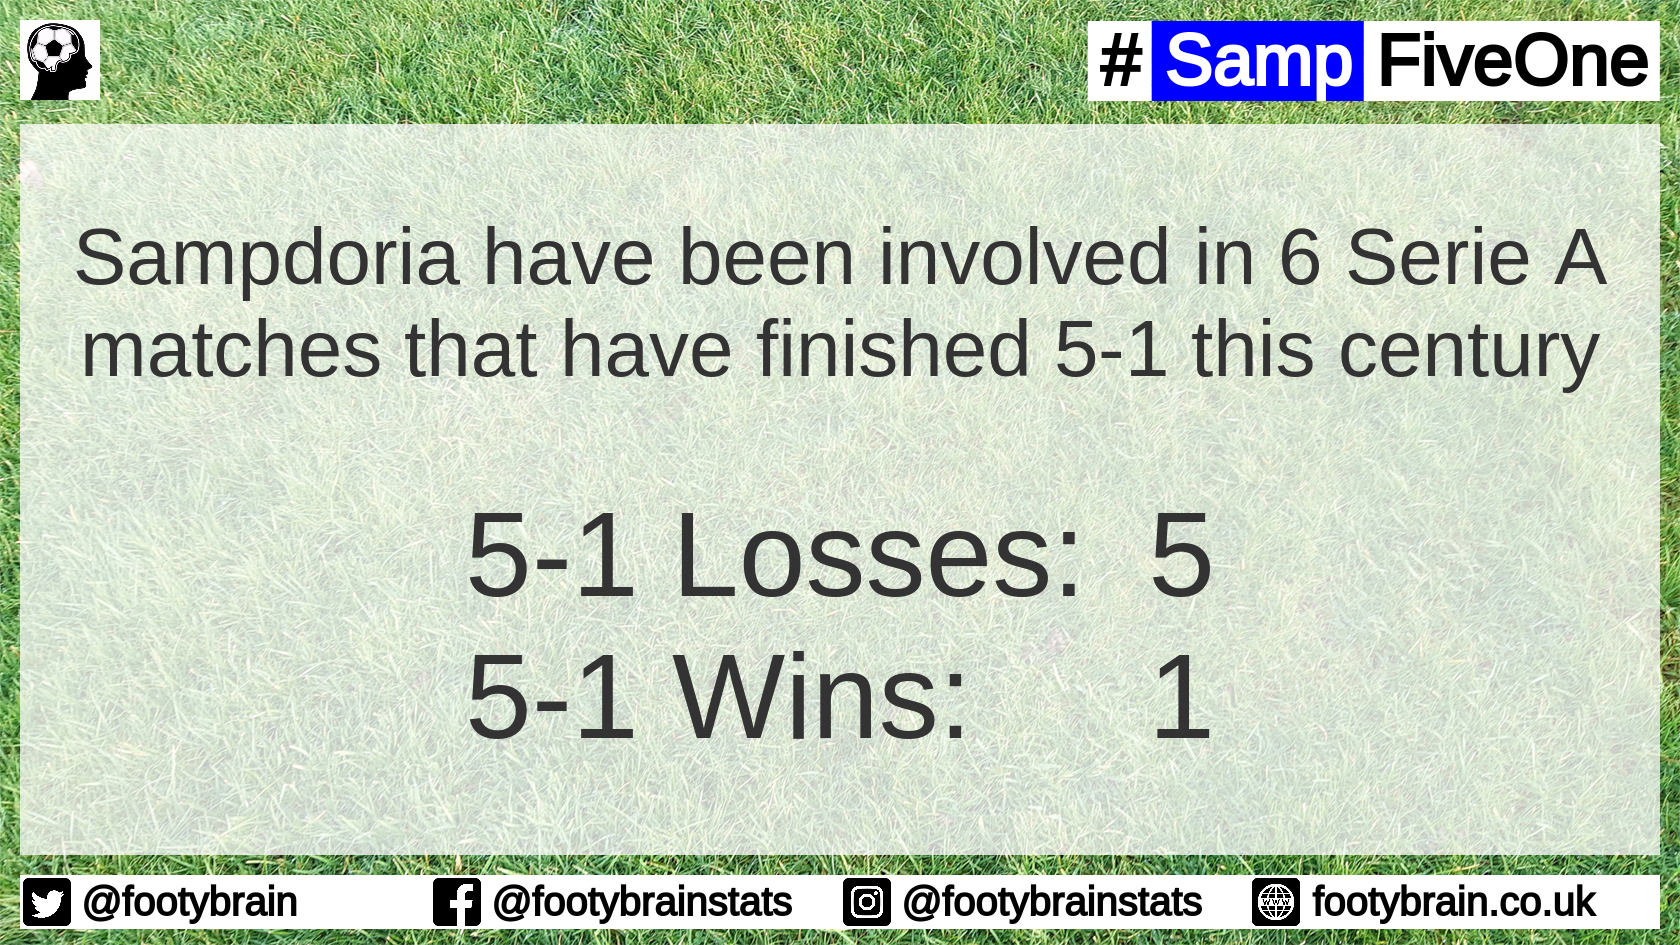 Sampdoria have won 1 and lost 5 of the six Serie A matches they have been involved in this century that have finished 5-1